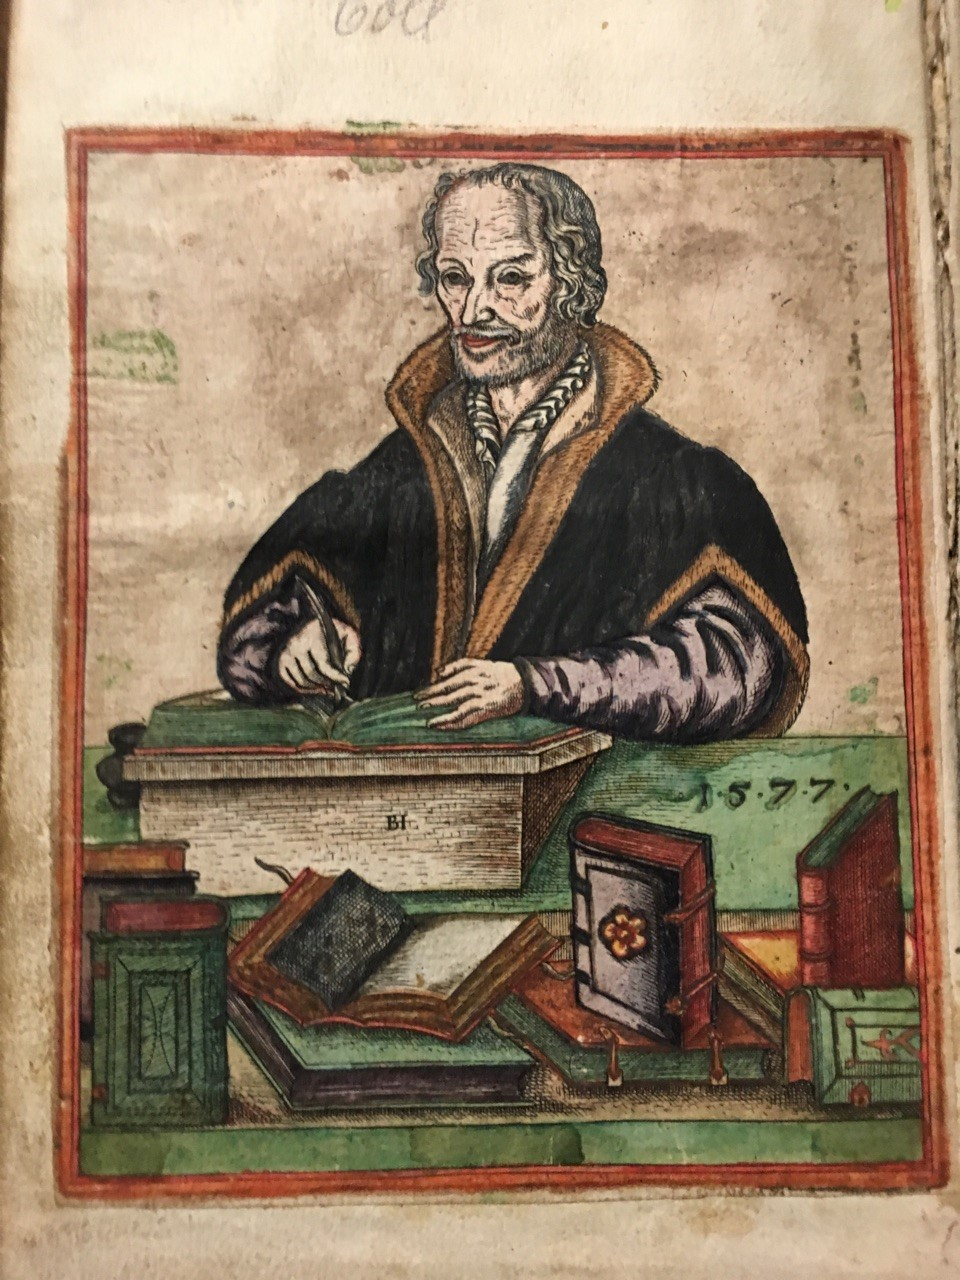 Philip Melanchthon (colored woodcut, 1577)